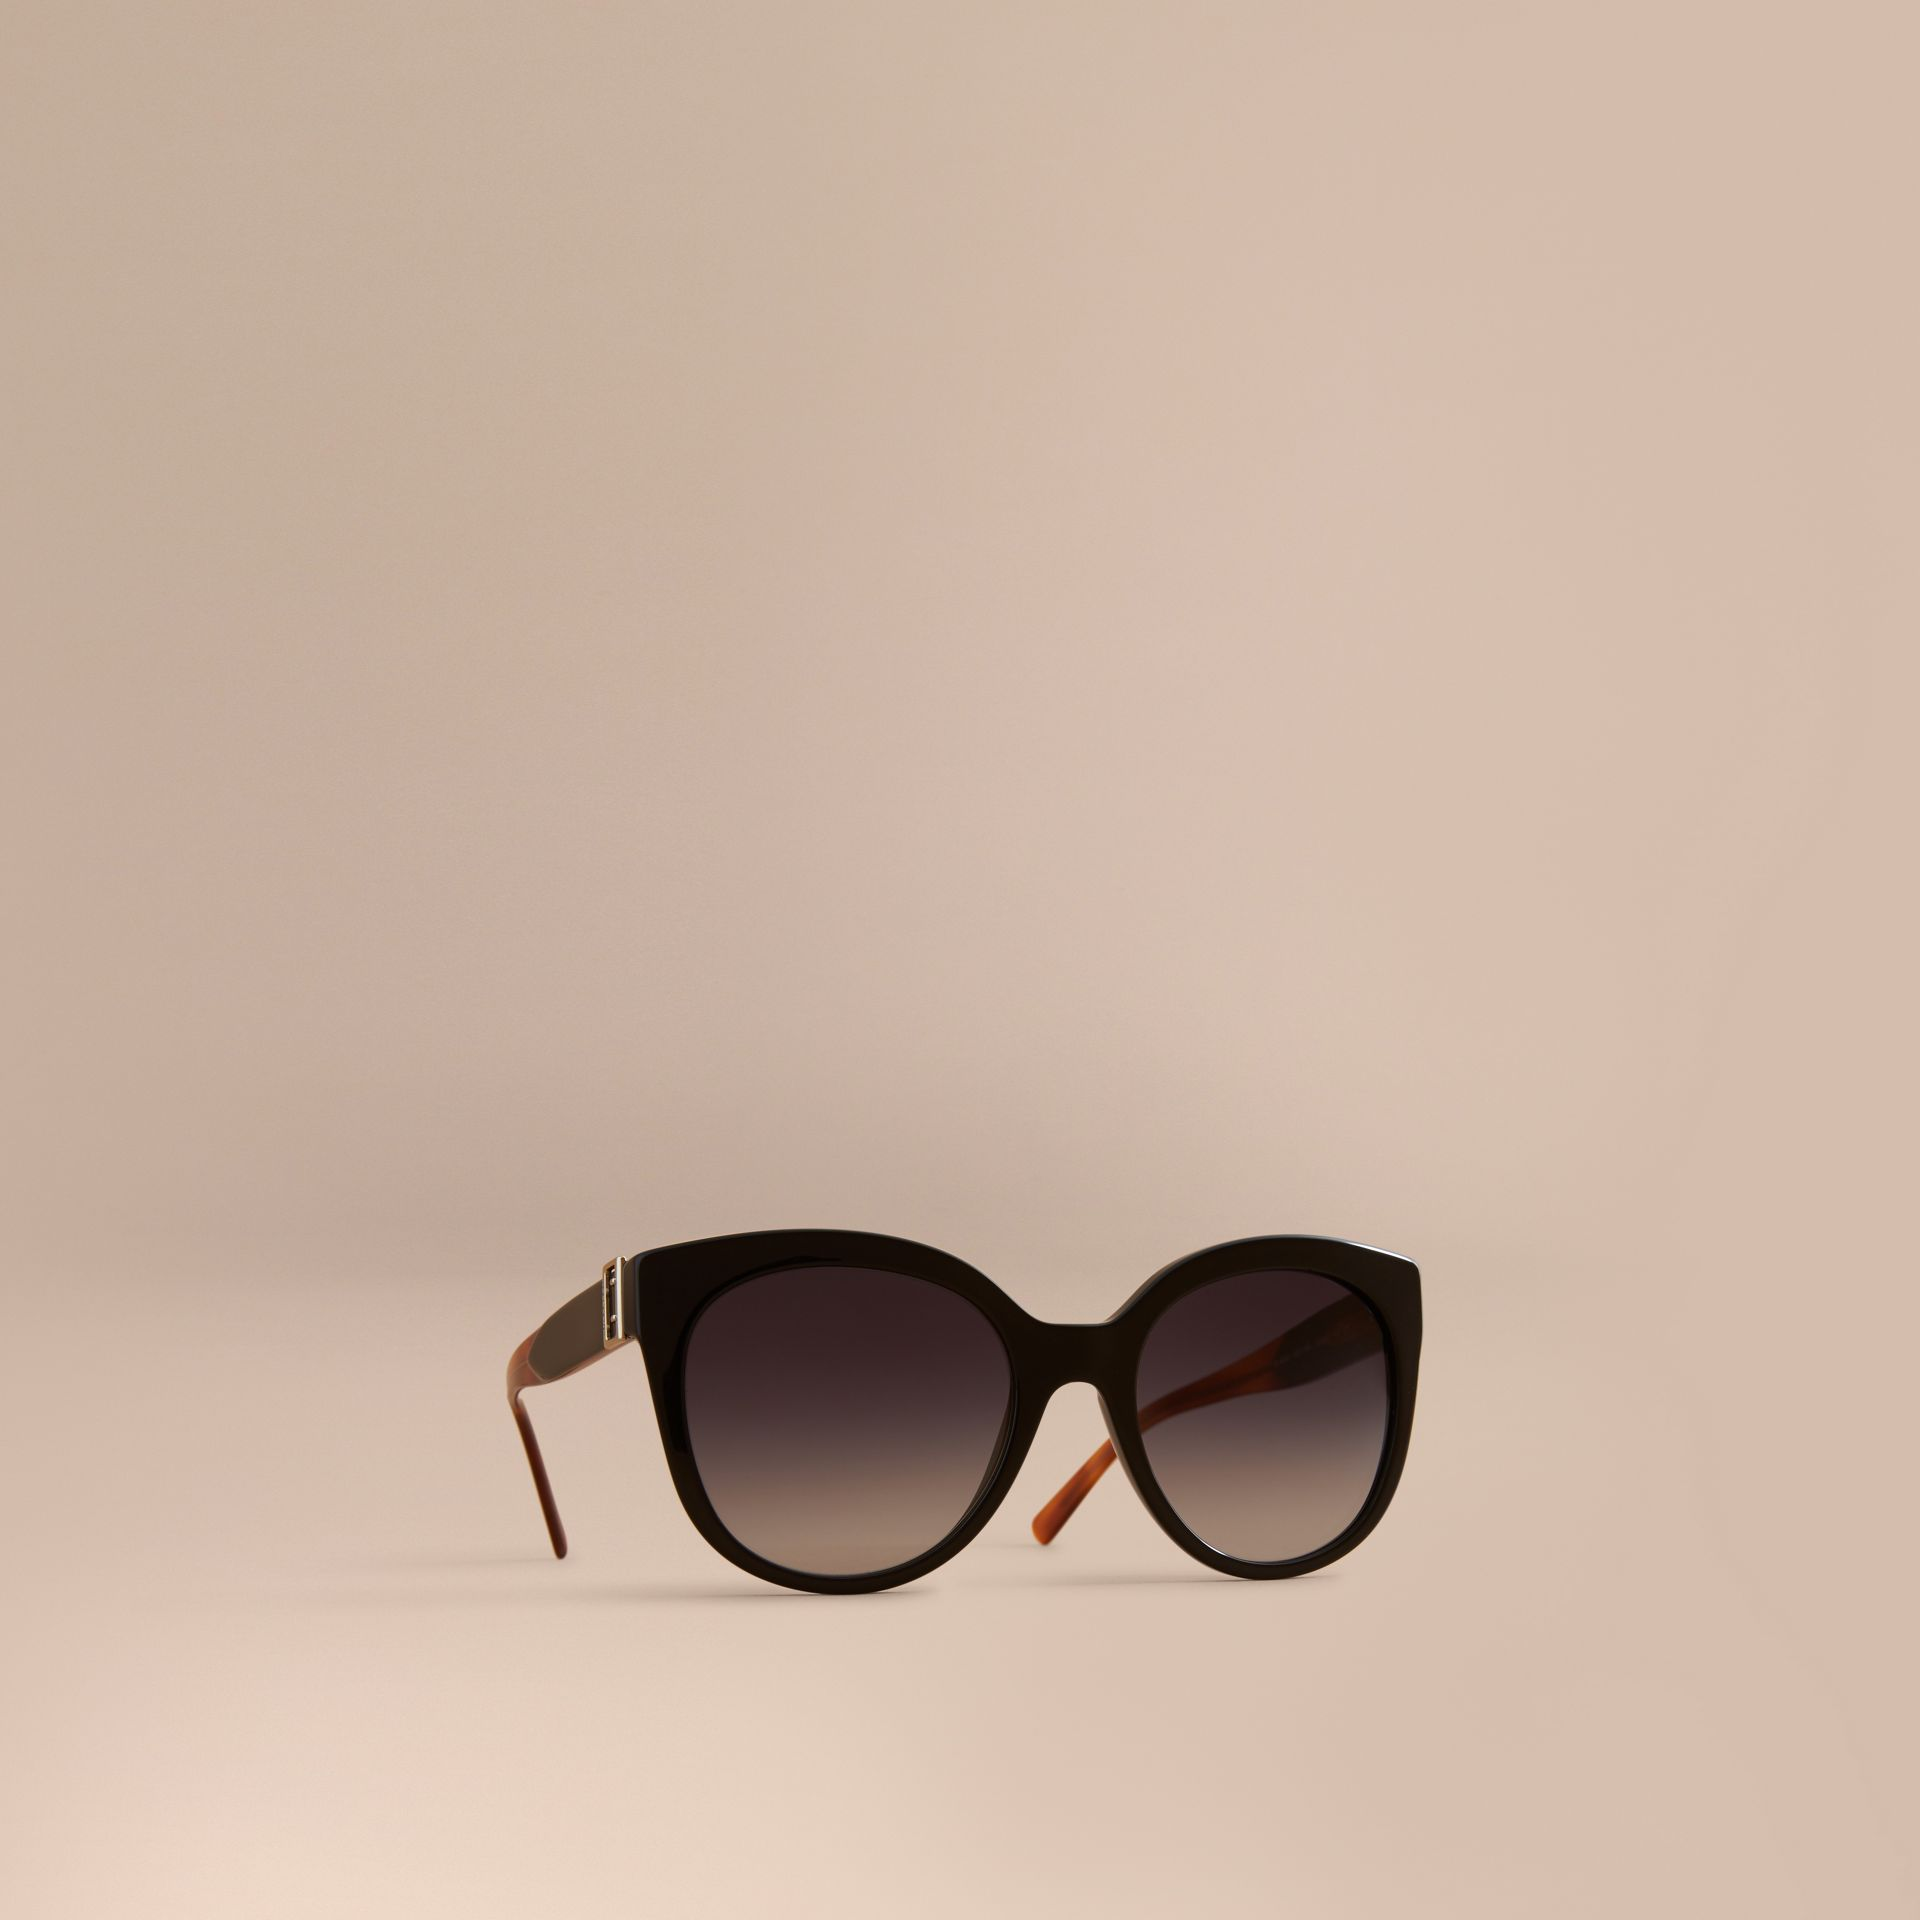 Buckle Detail Cat-eye Frame Sunglasses Black - gallery image 1